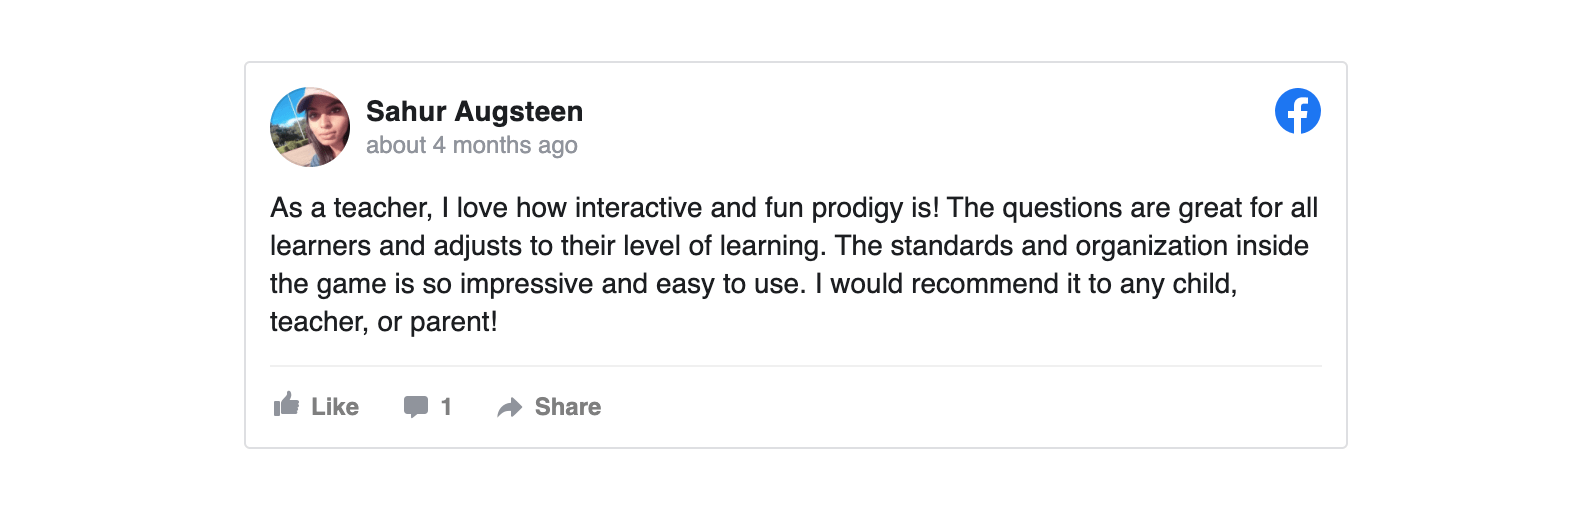 As a teacher, I love how interactive and fun Prodigy is! The questions are great for all learners and adjusts to their level of learning. The standards and organization inside the game is so impressive and easy to use. I would recommend it to any child, teacher or parent.